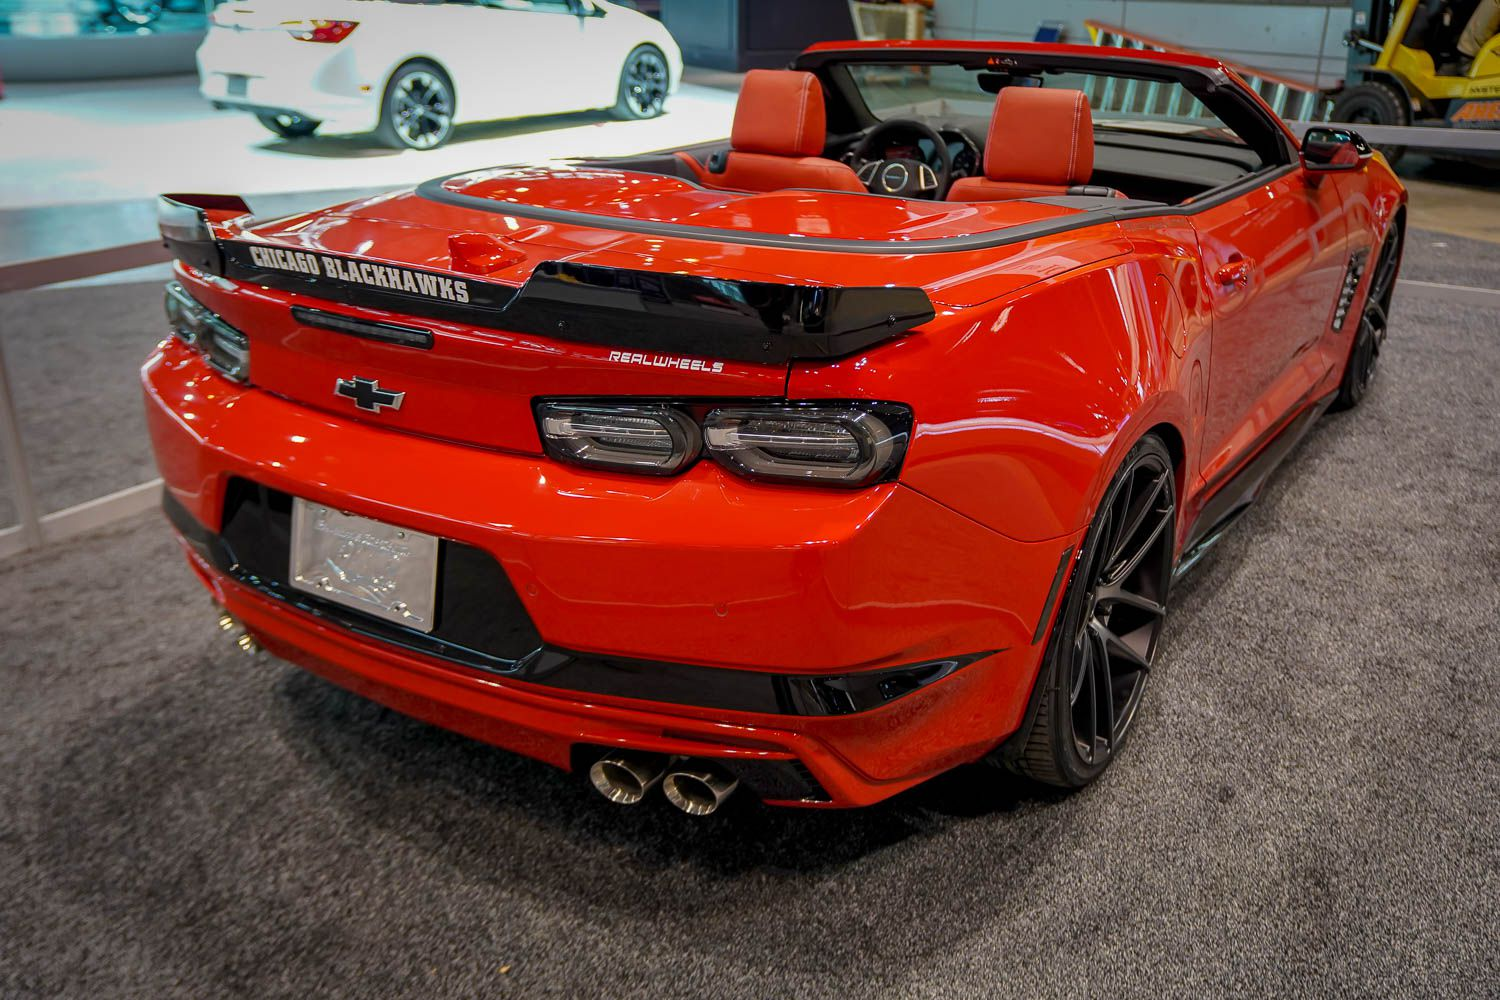 Photo 03: 2019 Chicago Blackhawks Chevrolet Camaro 2SS Convertible